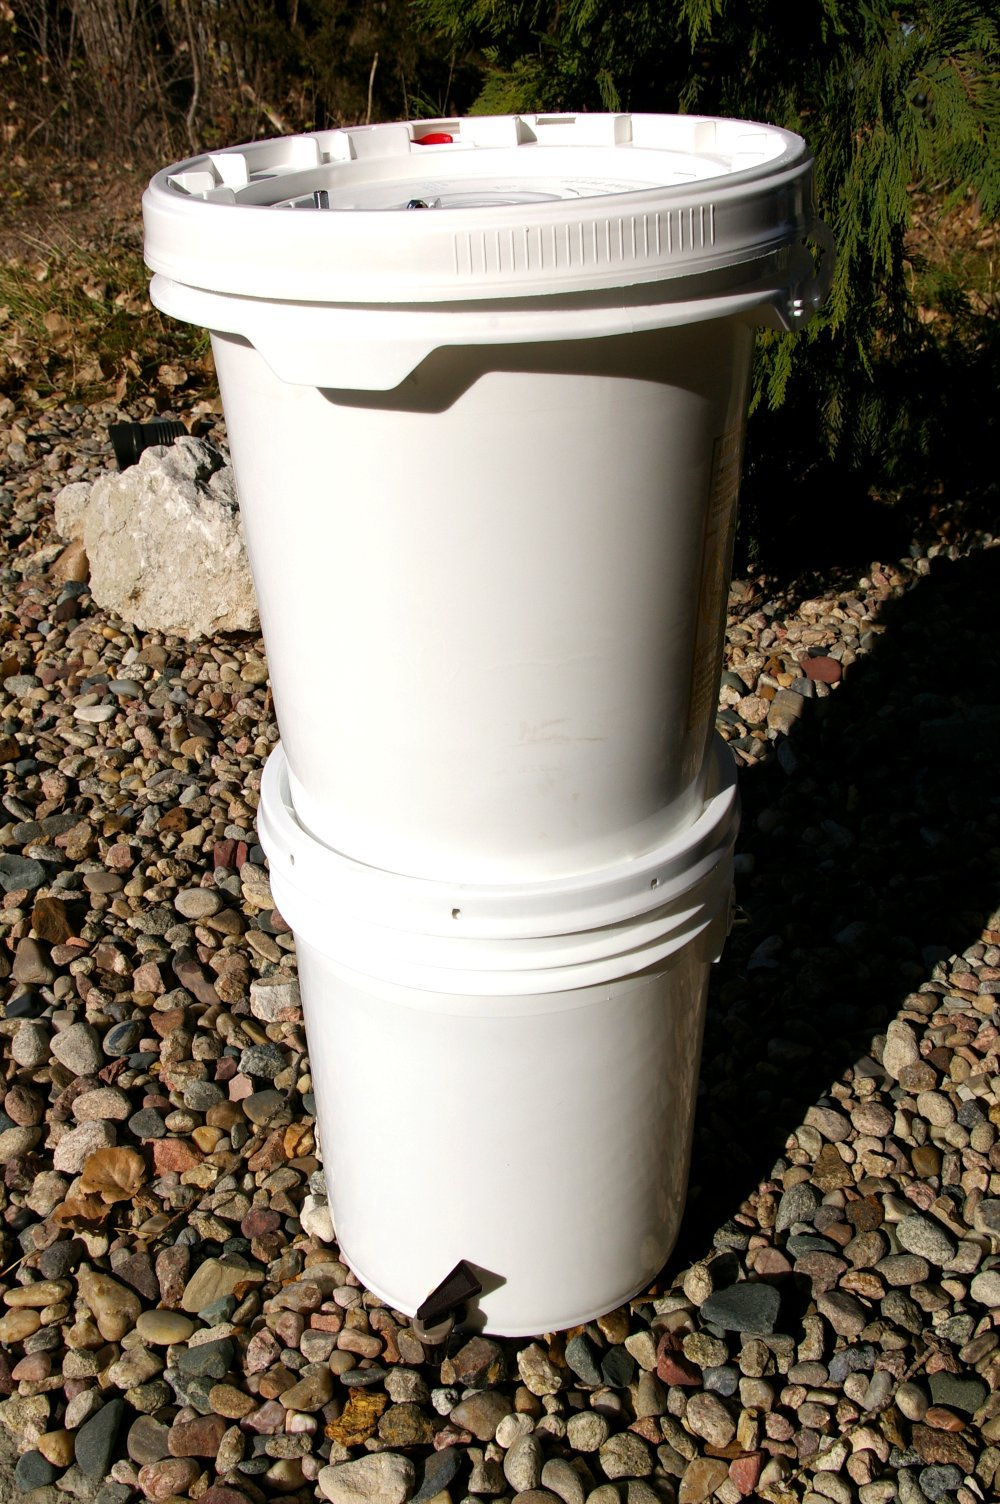 Buckets and 2 Ceramic Filters Gravity Feed Water Filter System Complete with 2